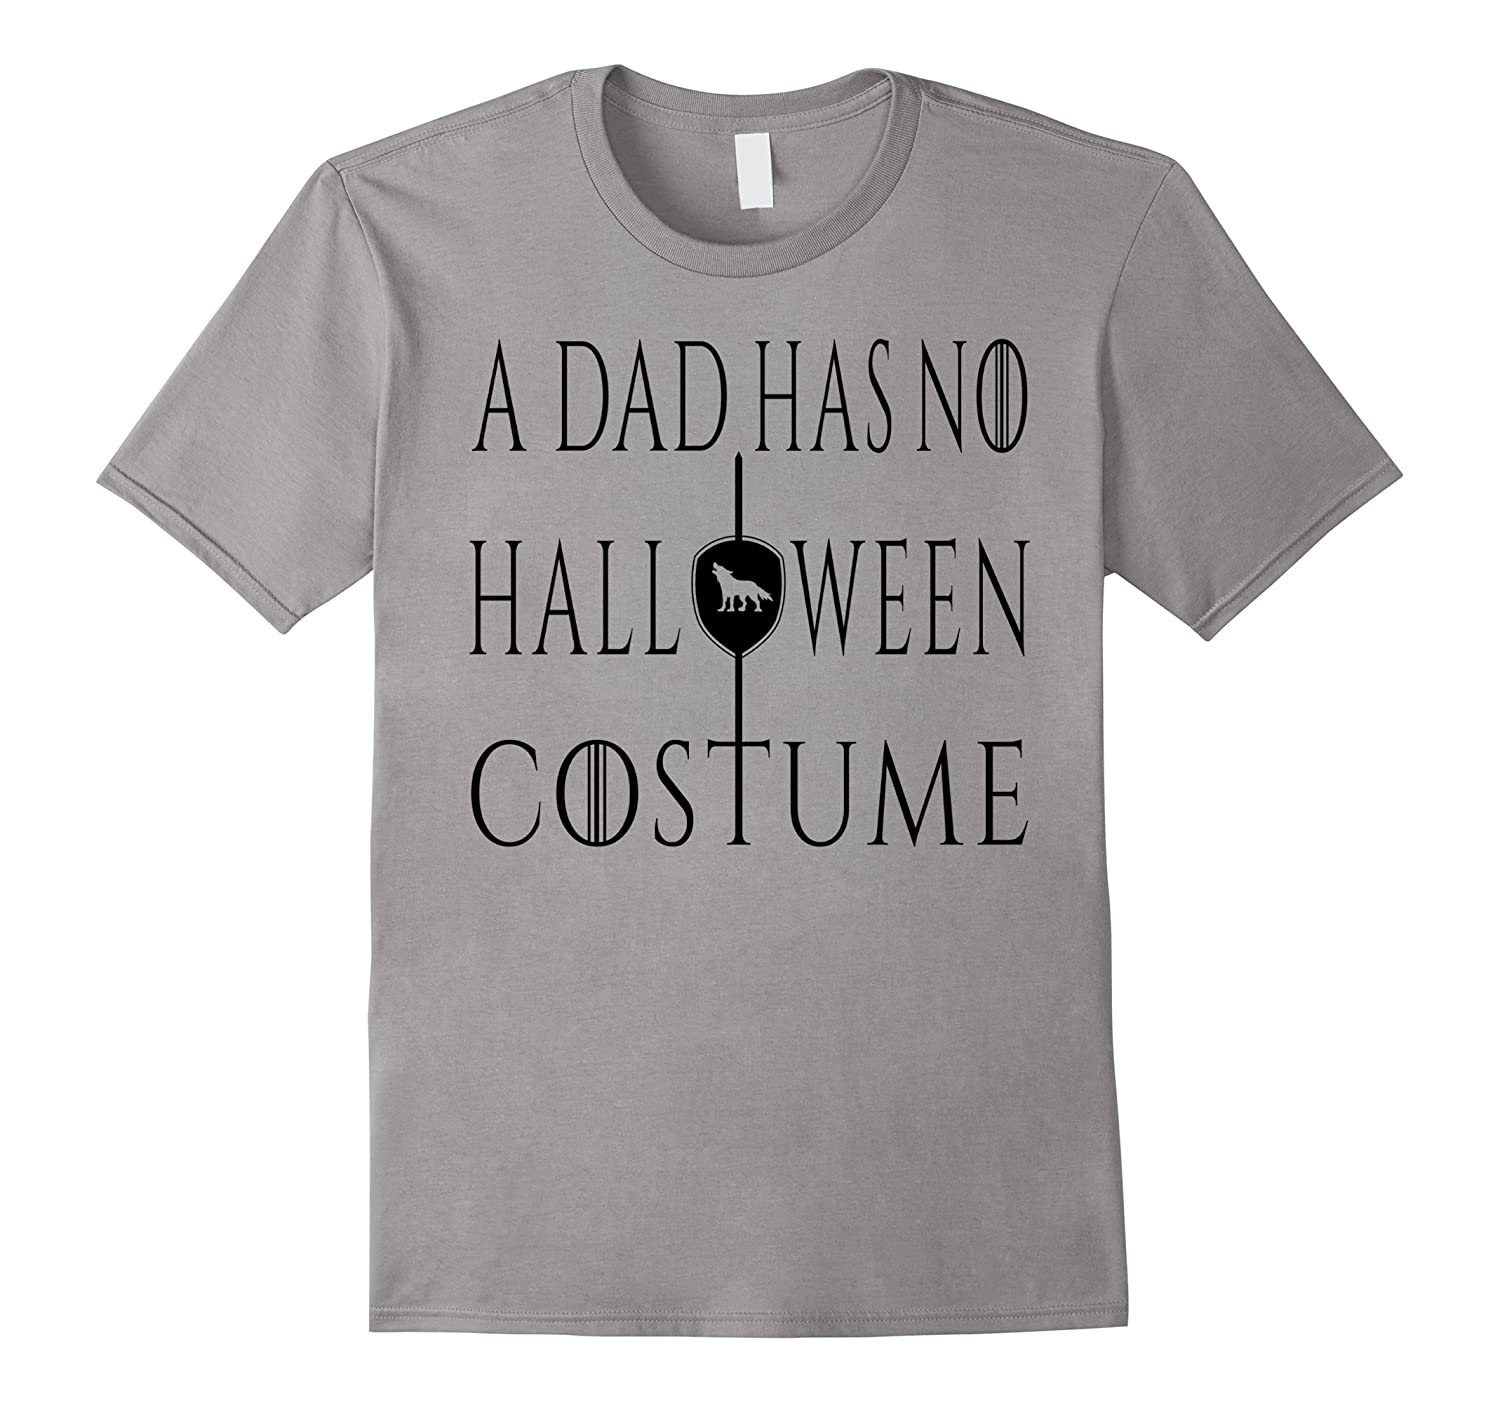 A Dad Has No Halloween Costume T-Shirt Funny Party Joke-Rose